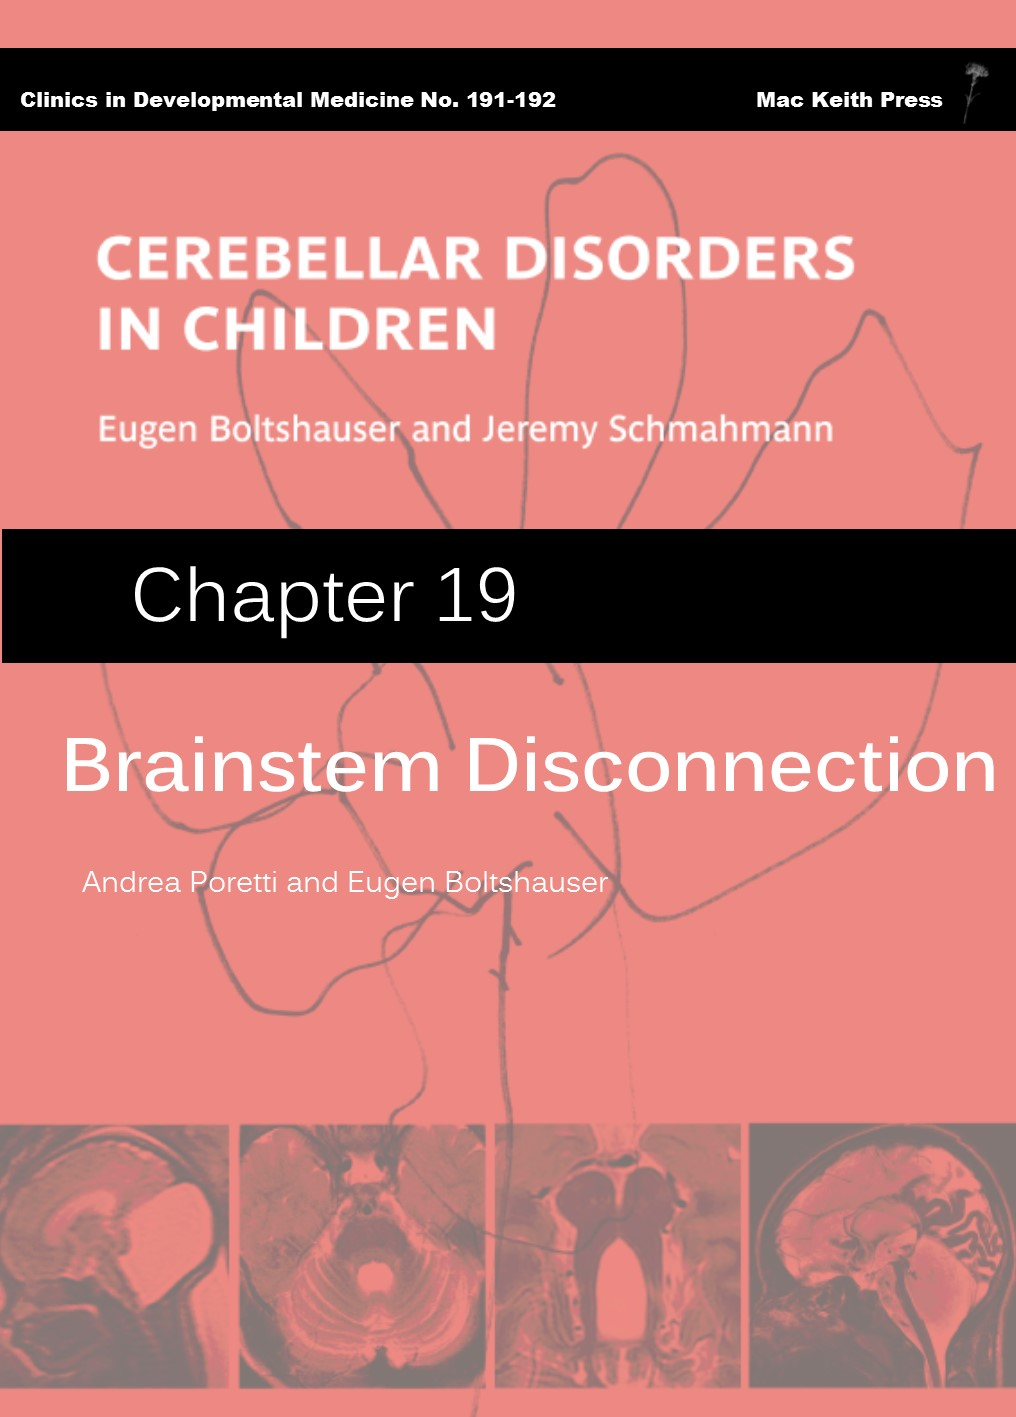 Brainstem Disconnection- Cerebellar Disorders in Children (Chapter 19) COVER